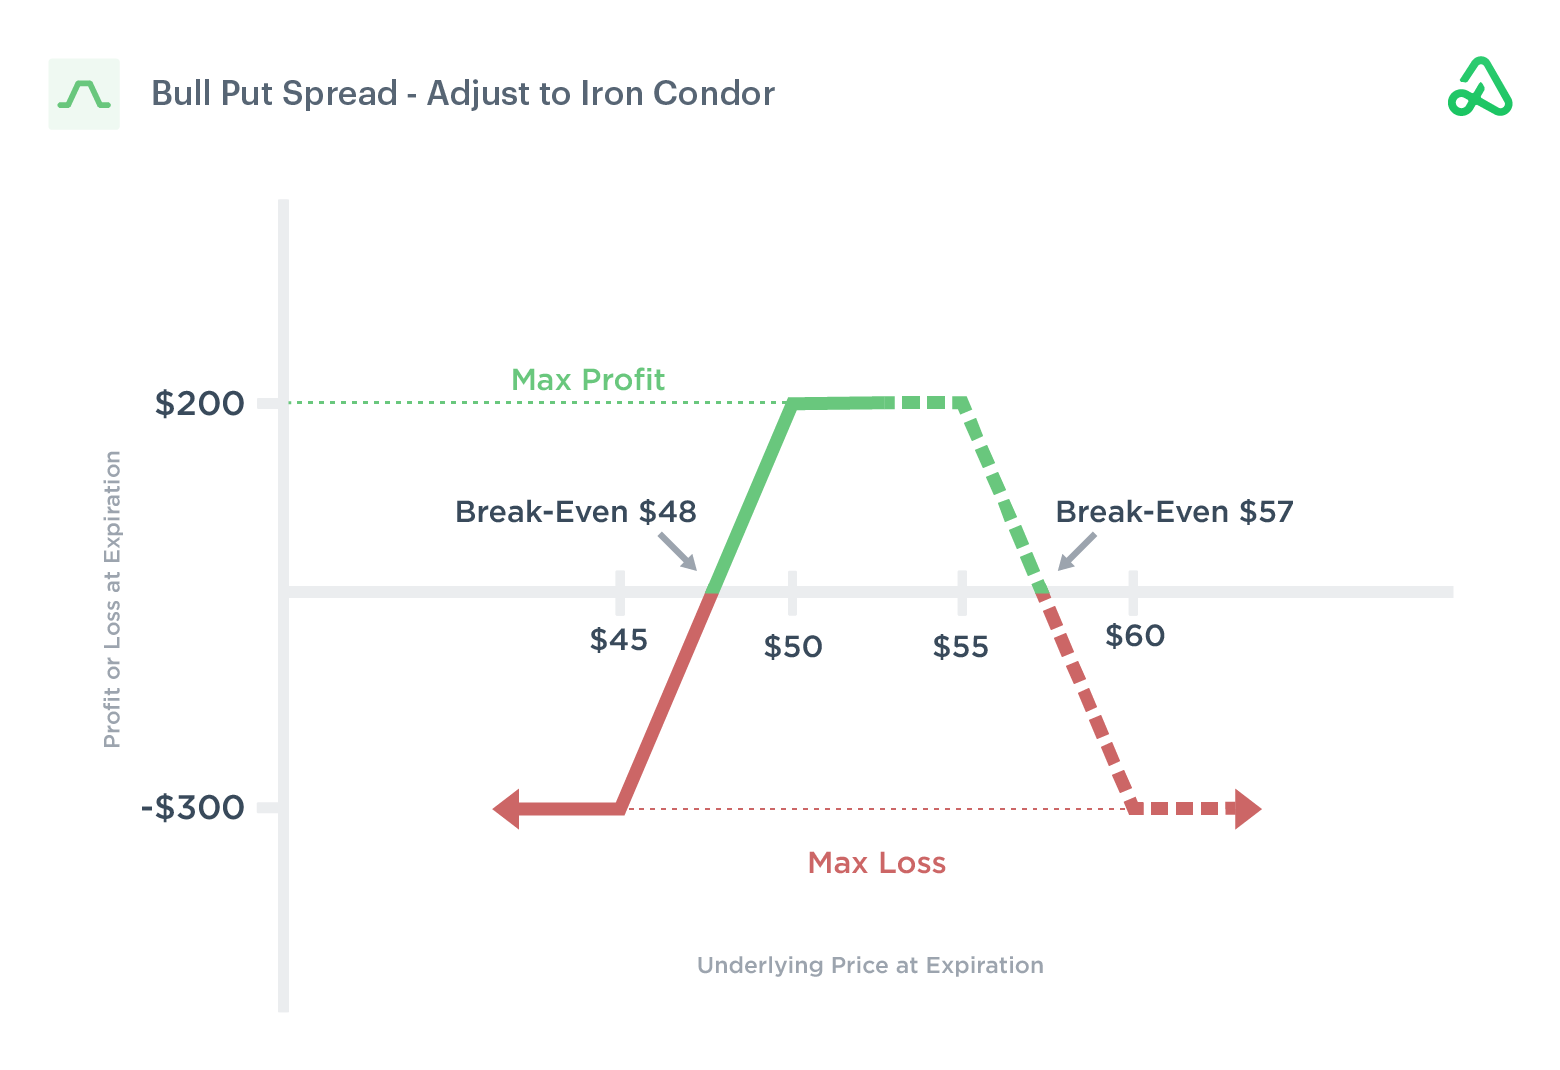 Image of a bull put spread adjusted to an iron condor